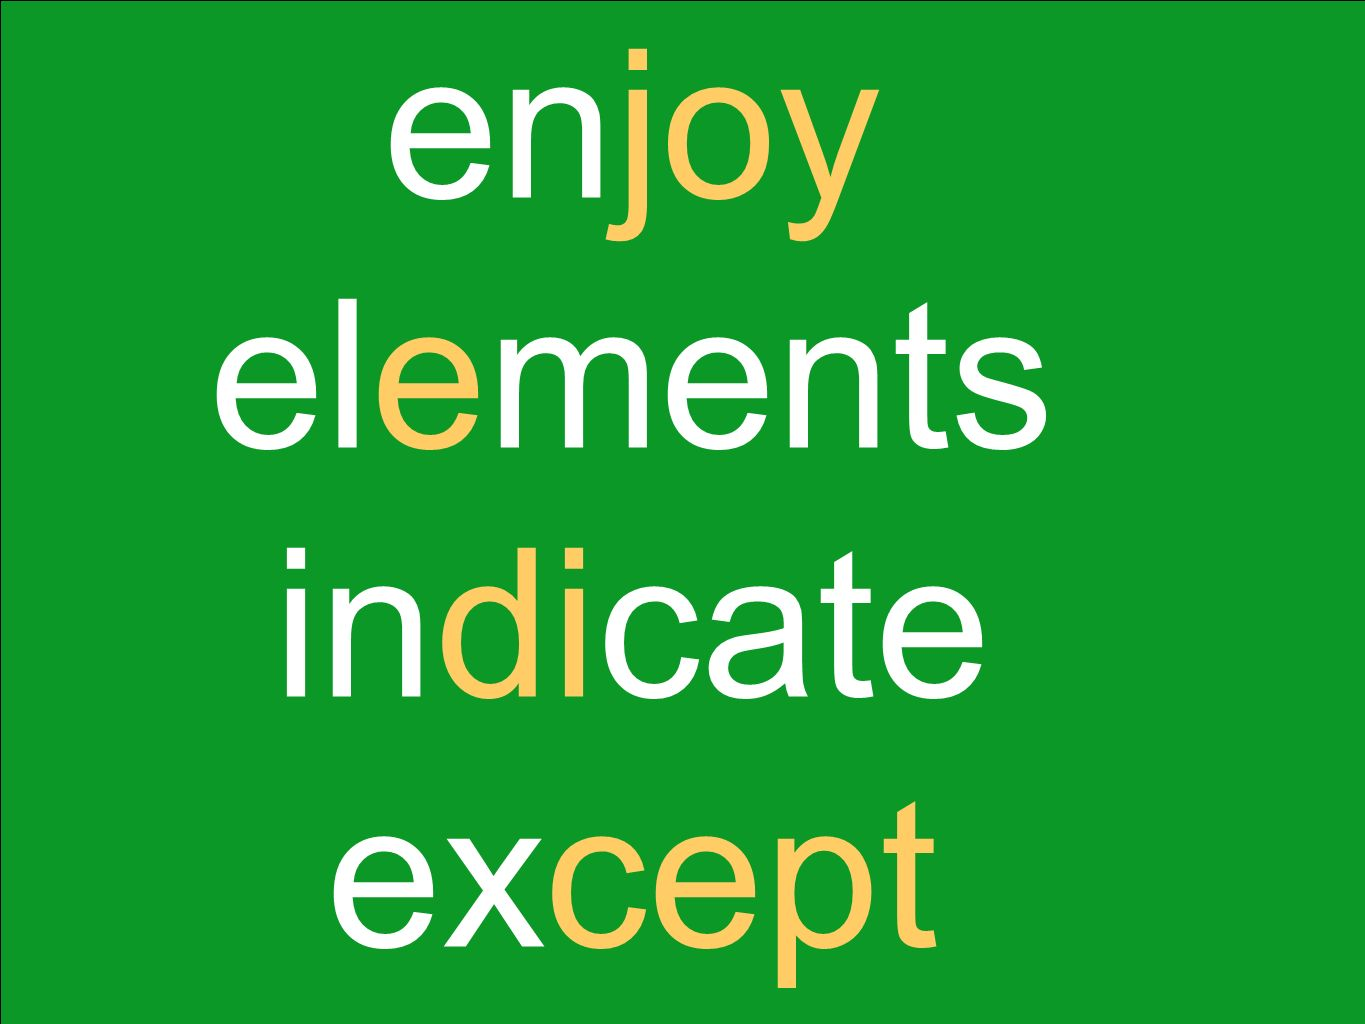 enjoy elements indicate except